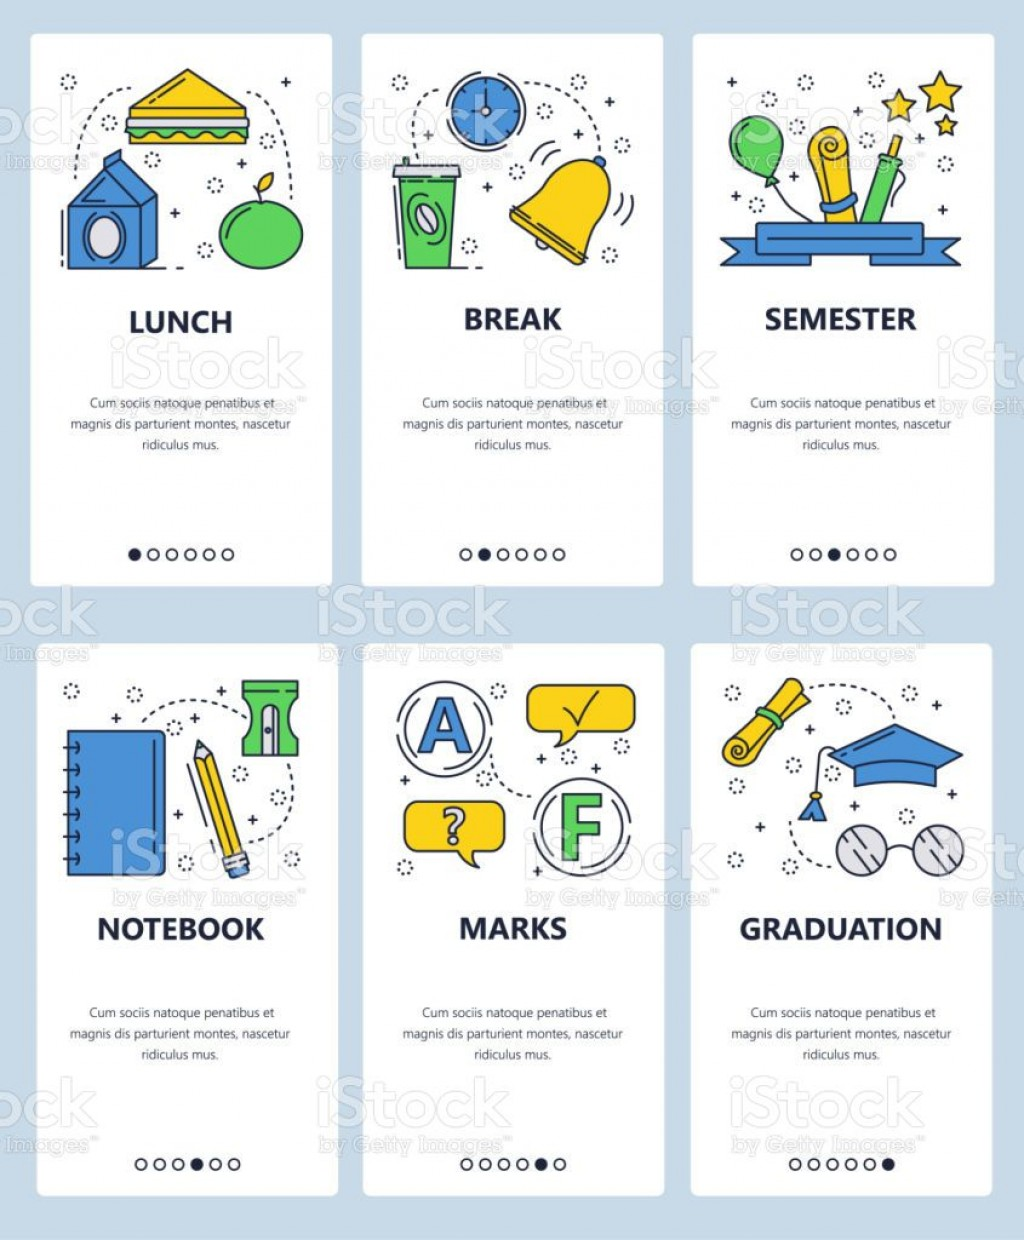 004 Awful School Lunch Menu Template Example  Monthly Free Printable BlankLarge